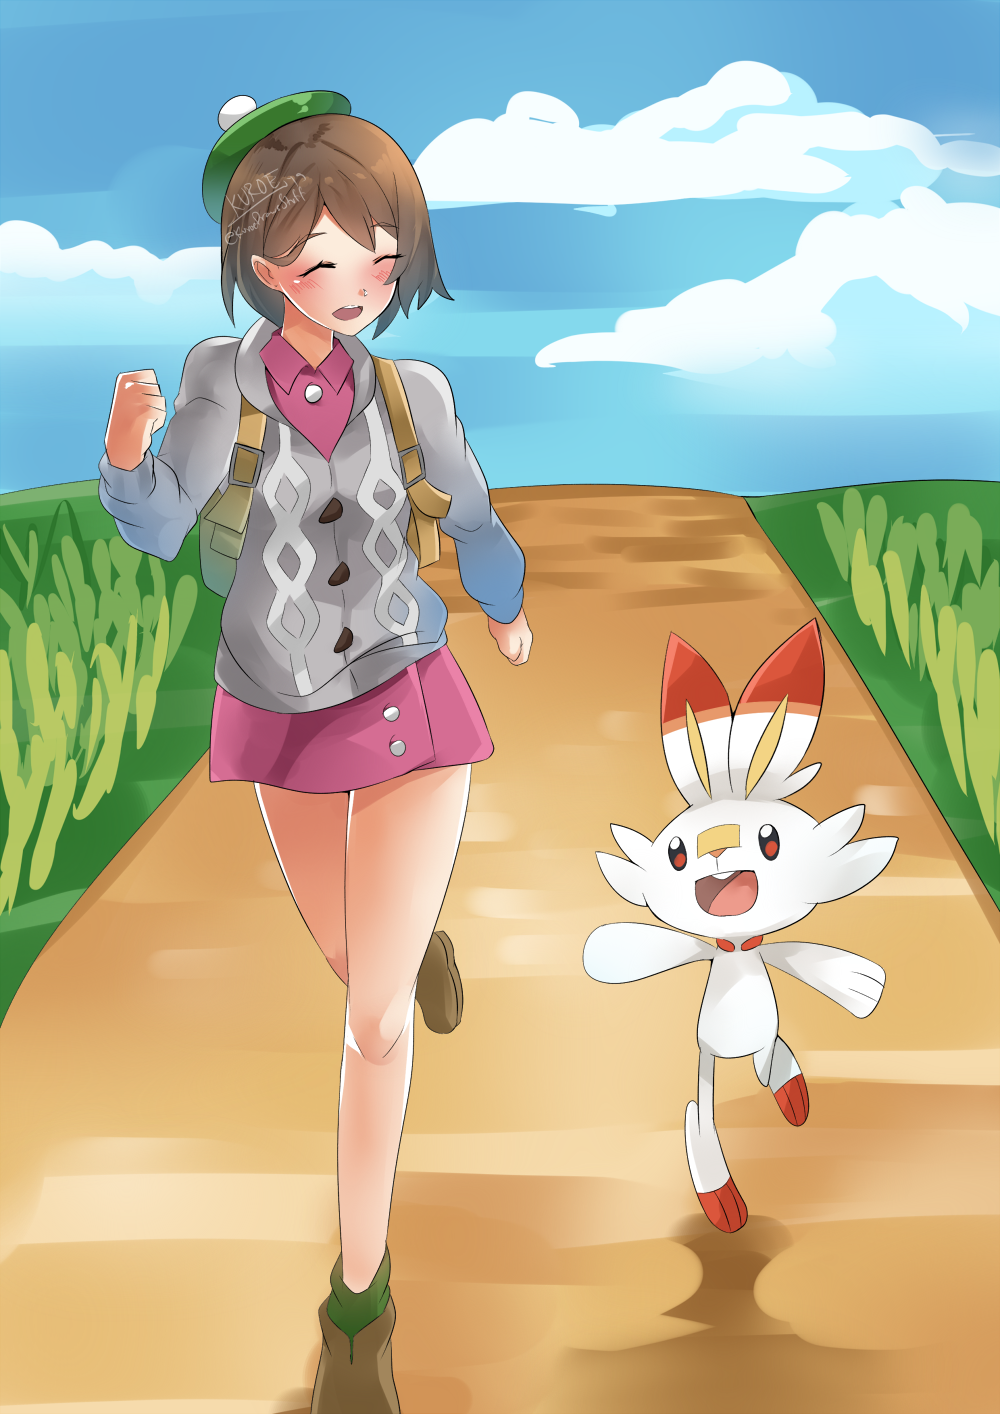 Off to a new adventure! [Pokemon Sword/Shield] by KuroeArt